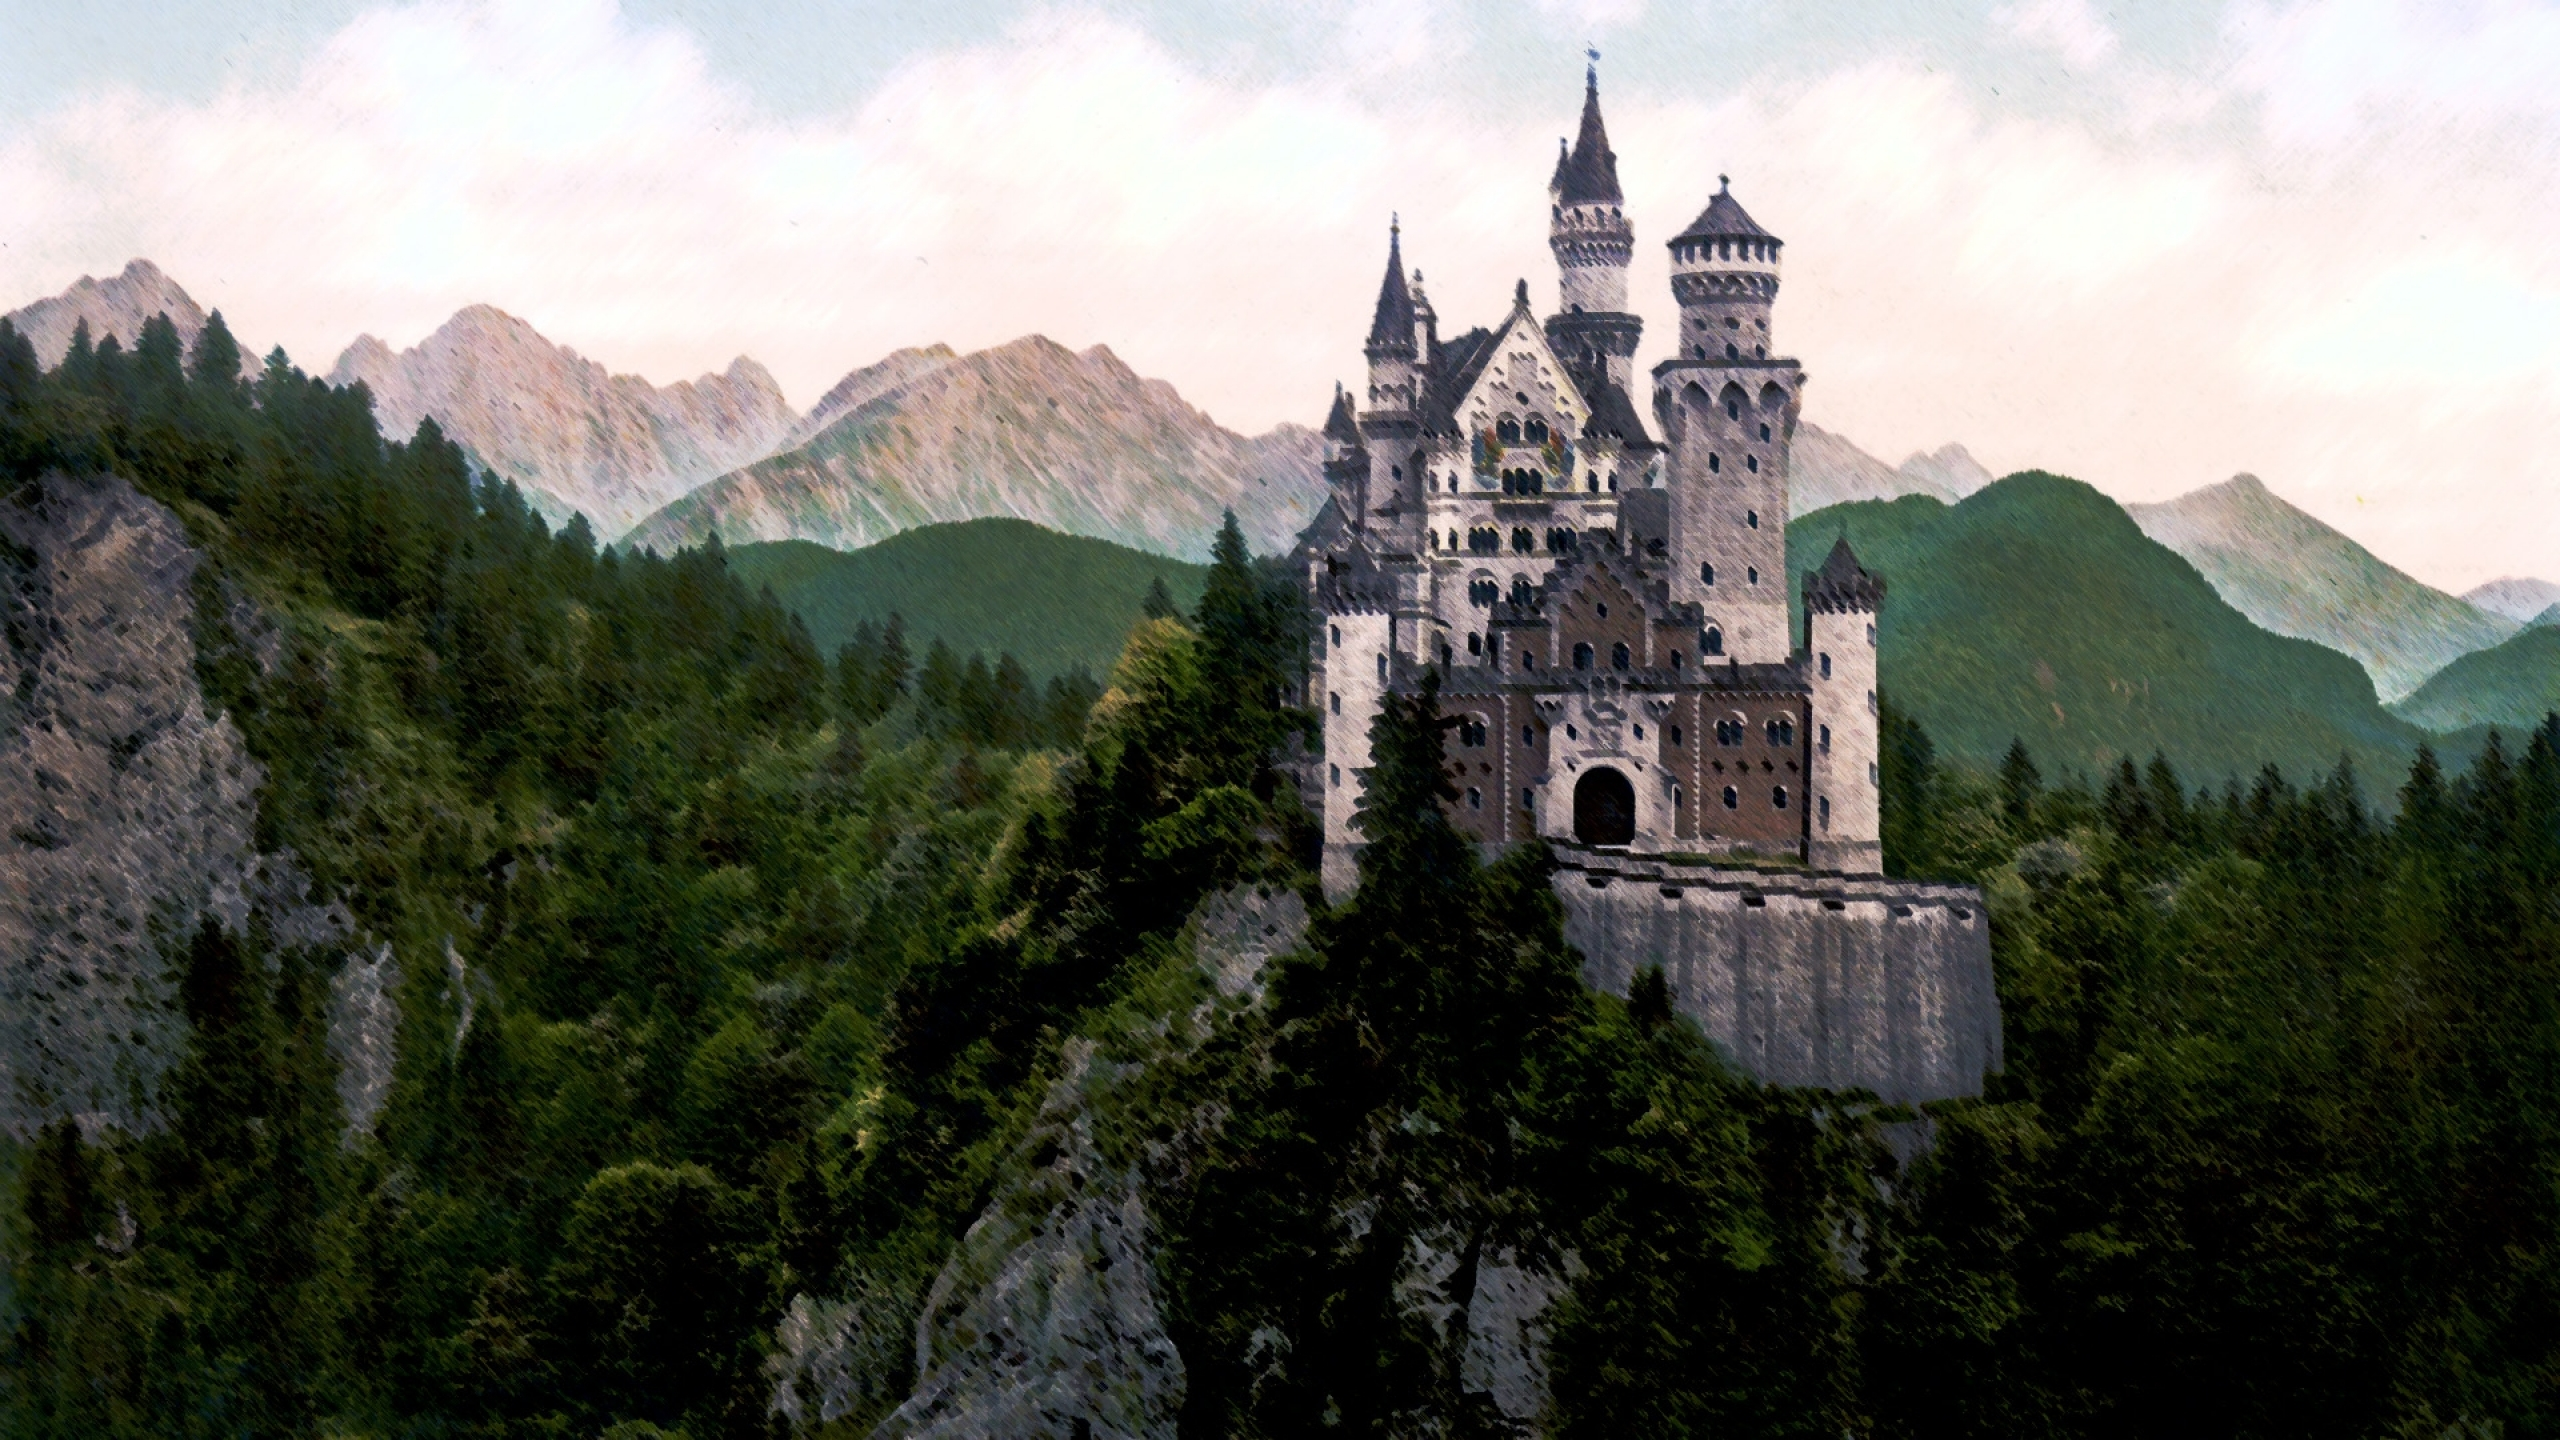 castles forest hills 1920x1080 wallpaper Miscellaneous HD Wallpaper 2560x1440